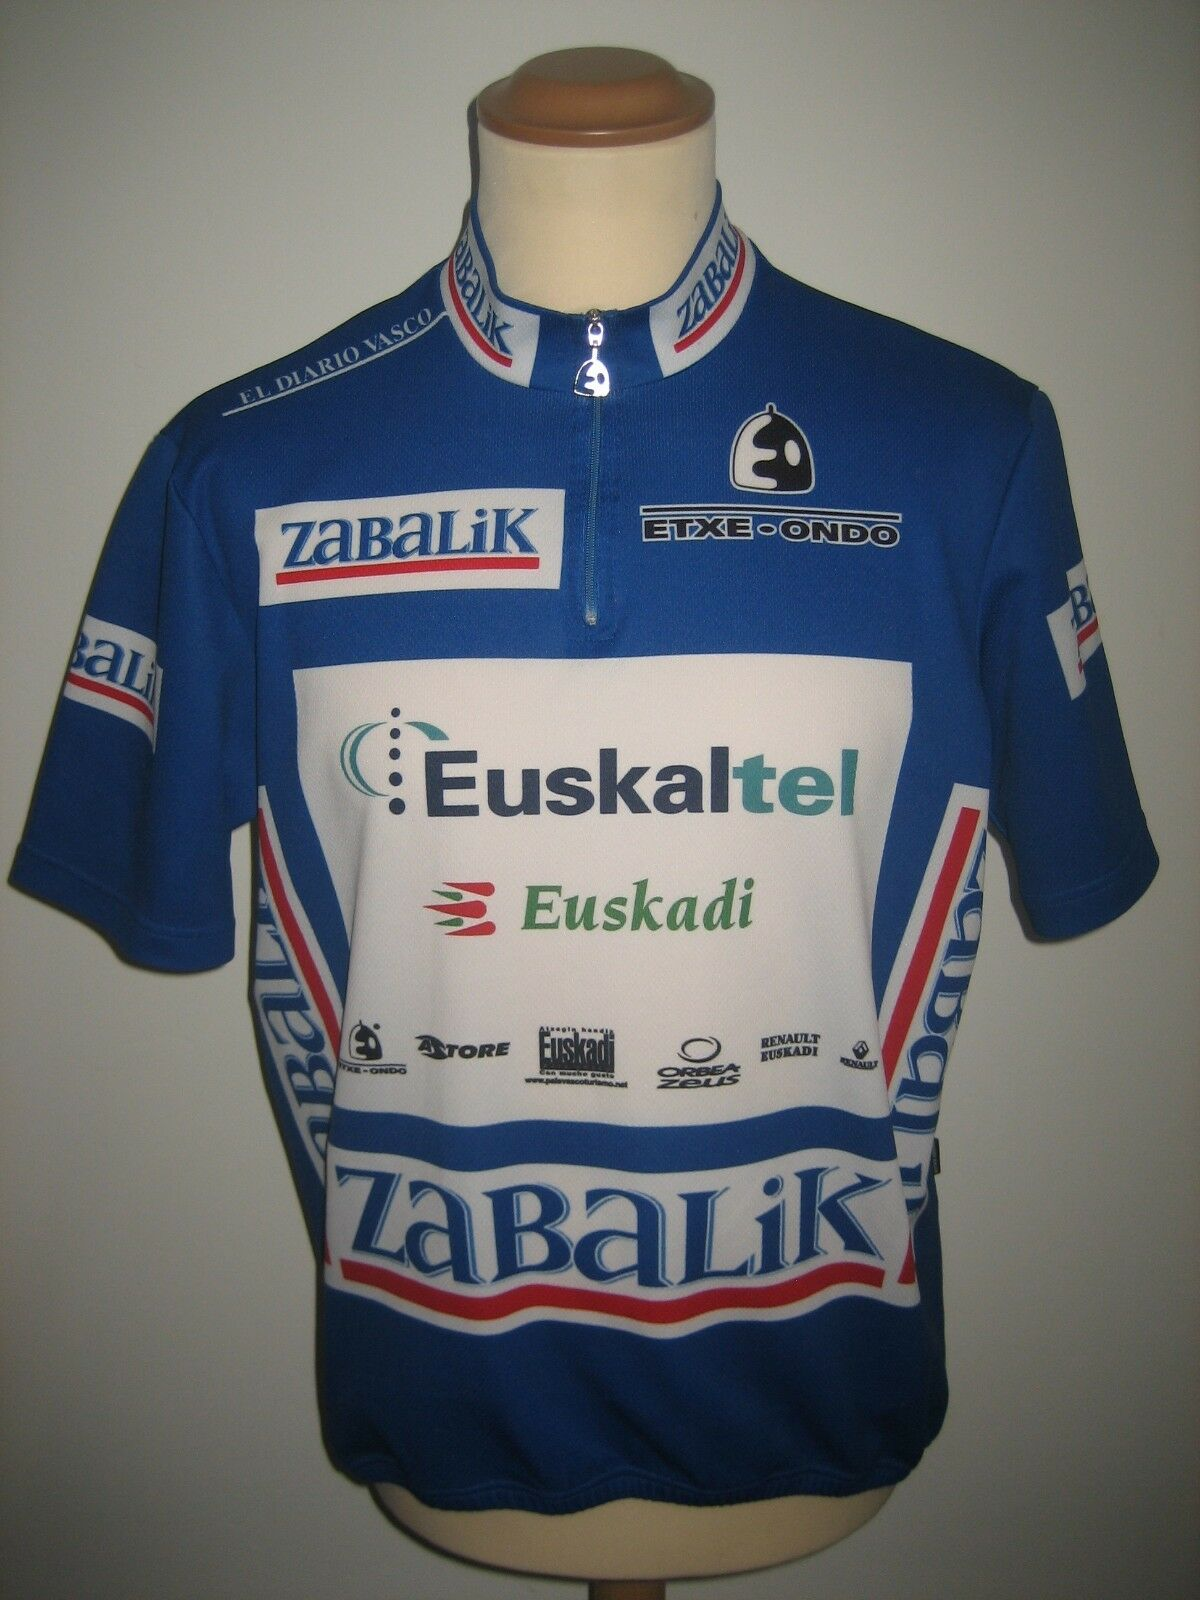 Euskaltel Euskadi RIDER WORN Spain  shirt cycling maillot camiseta jersey size XL  free delivery and returns